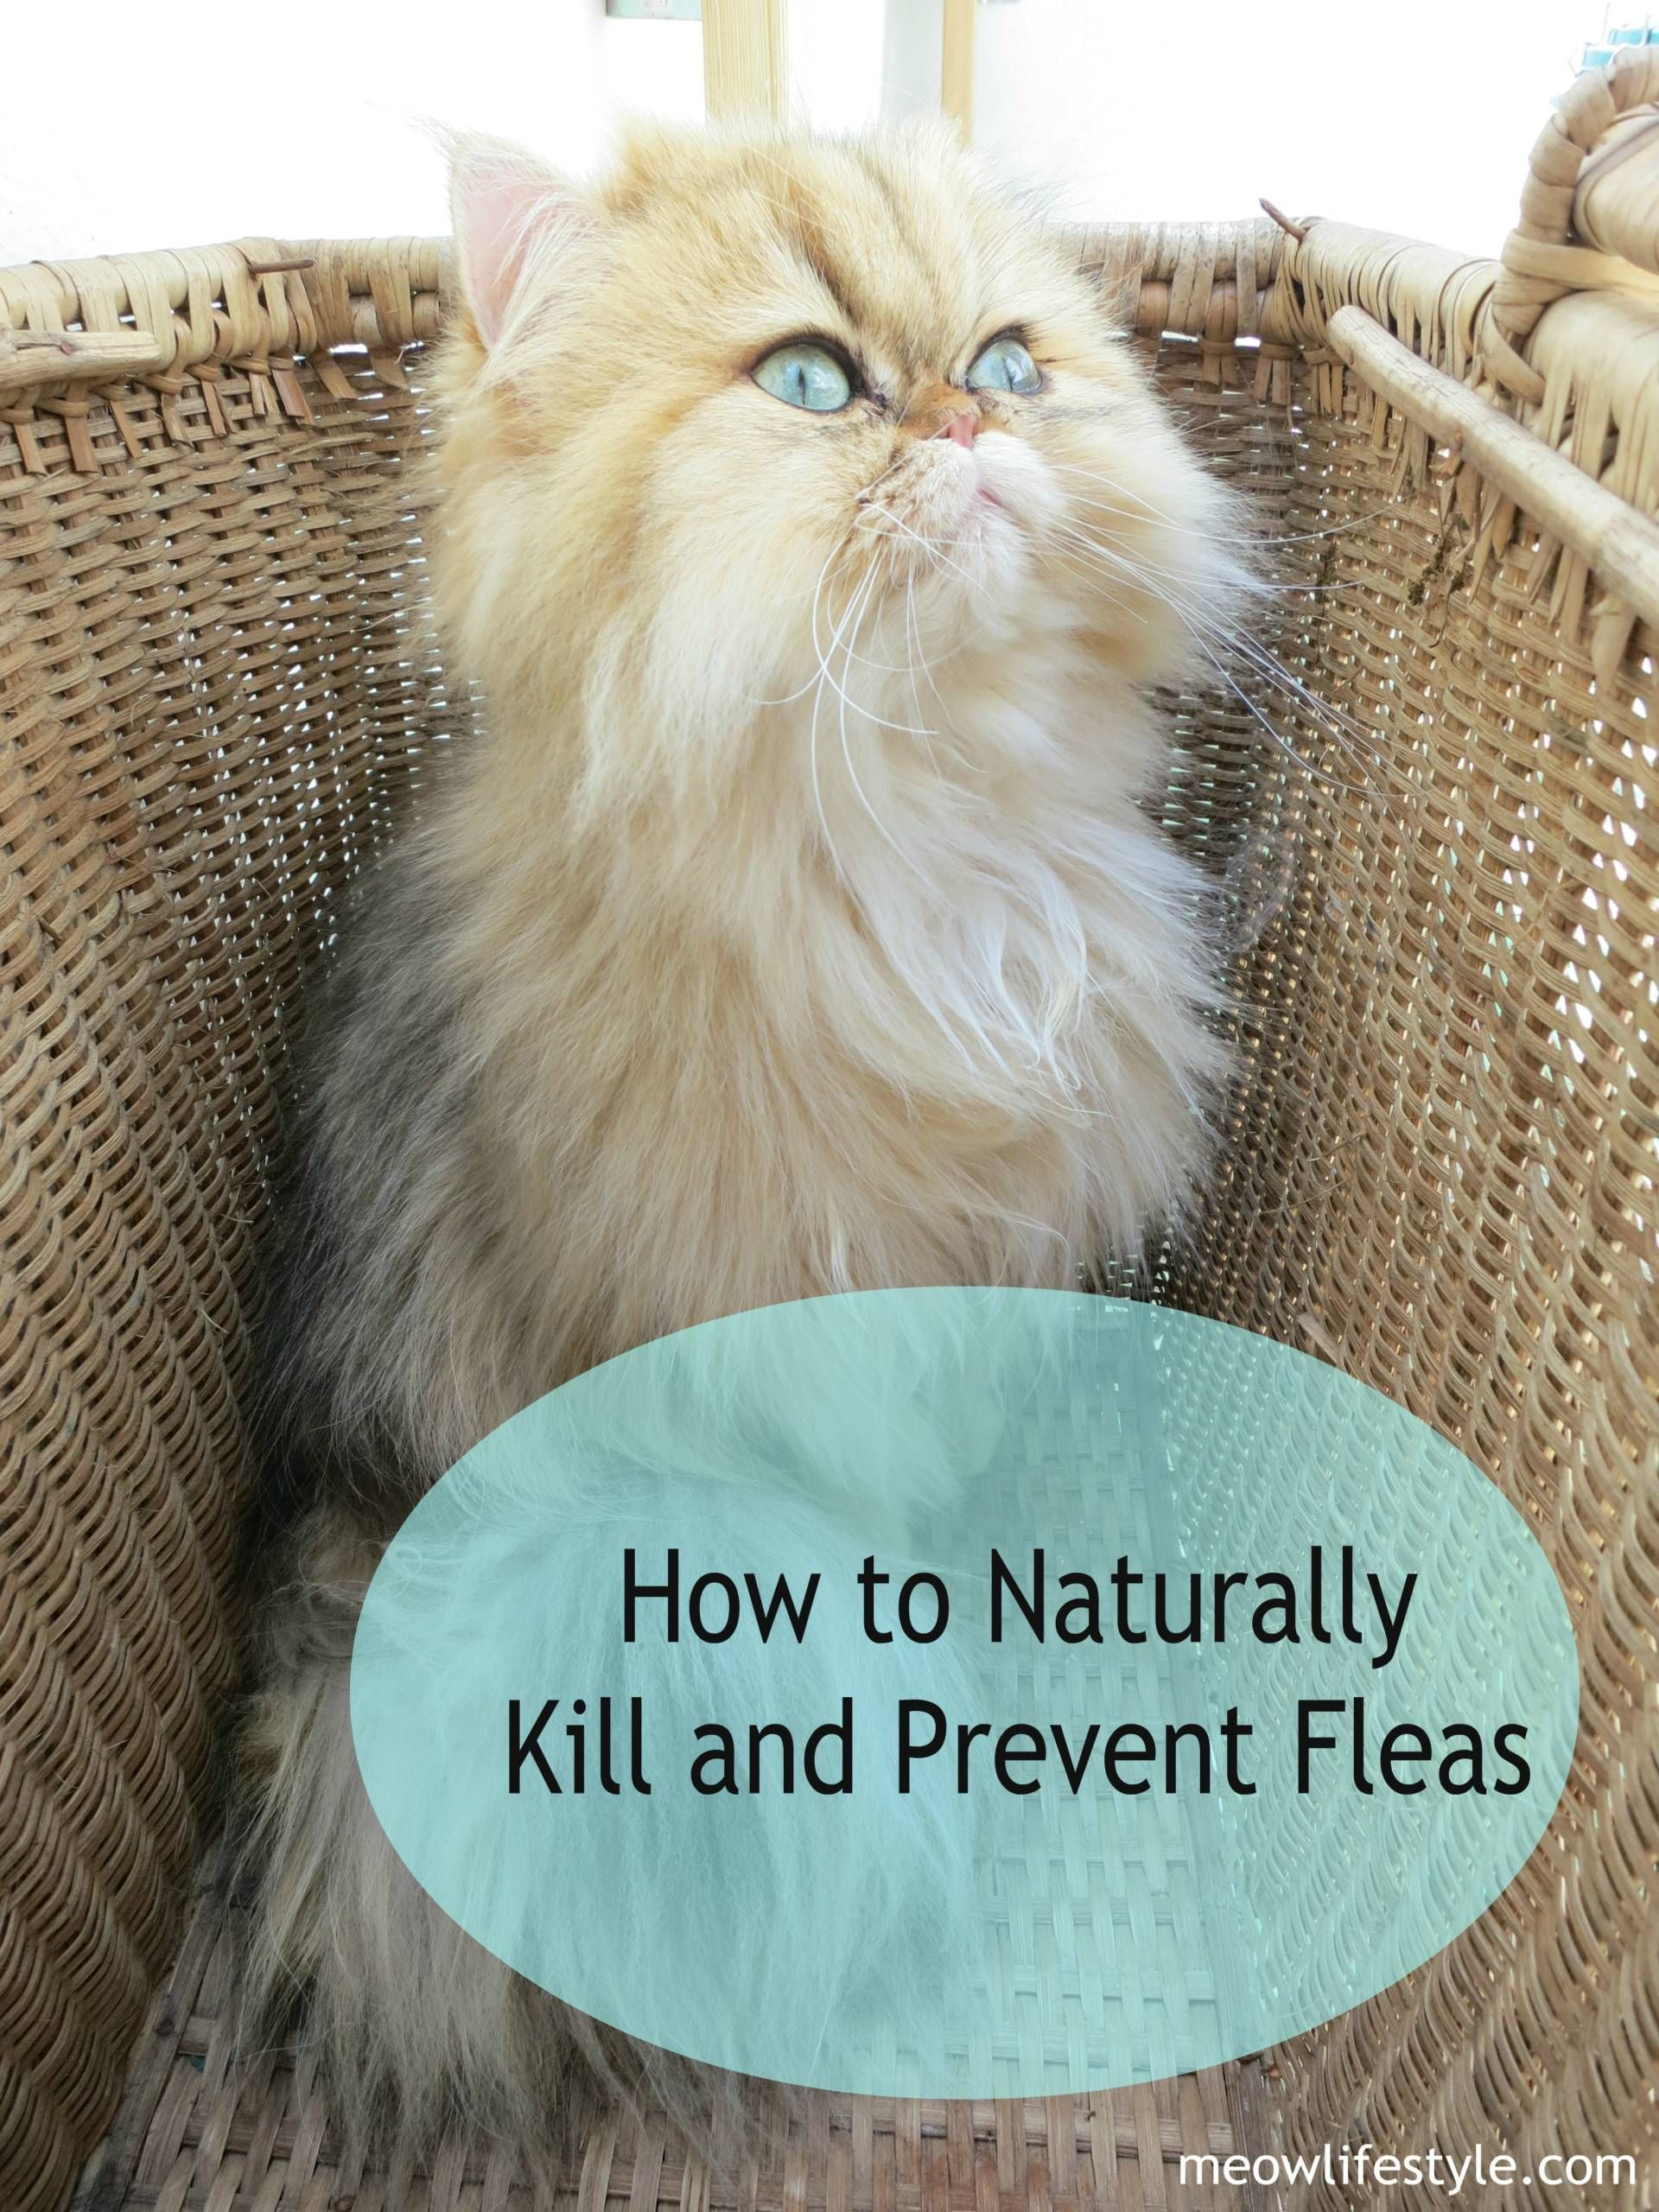 Home Remedies For Fleas On Young Kittens